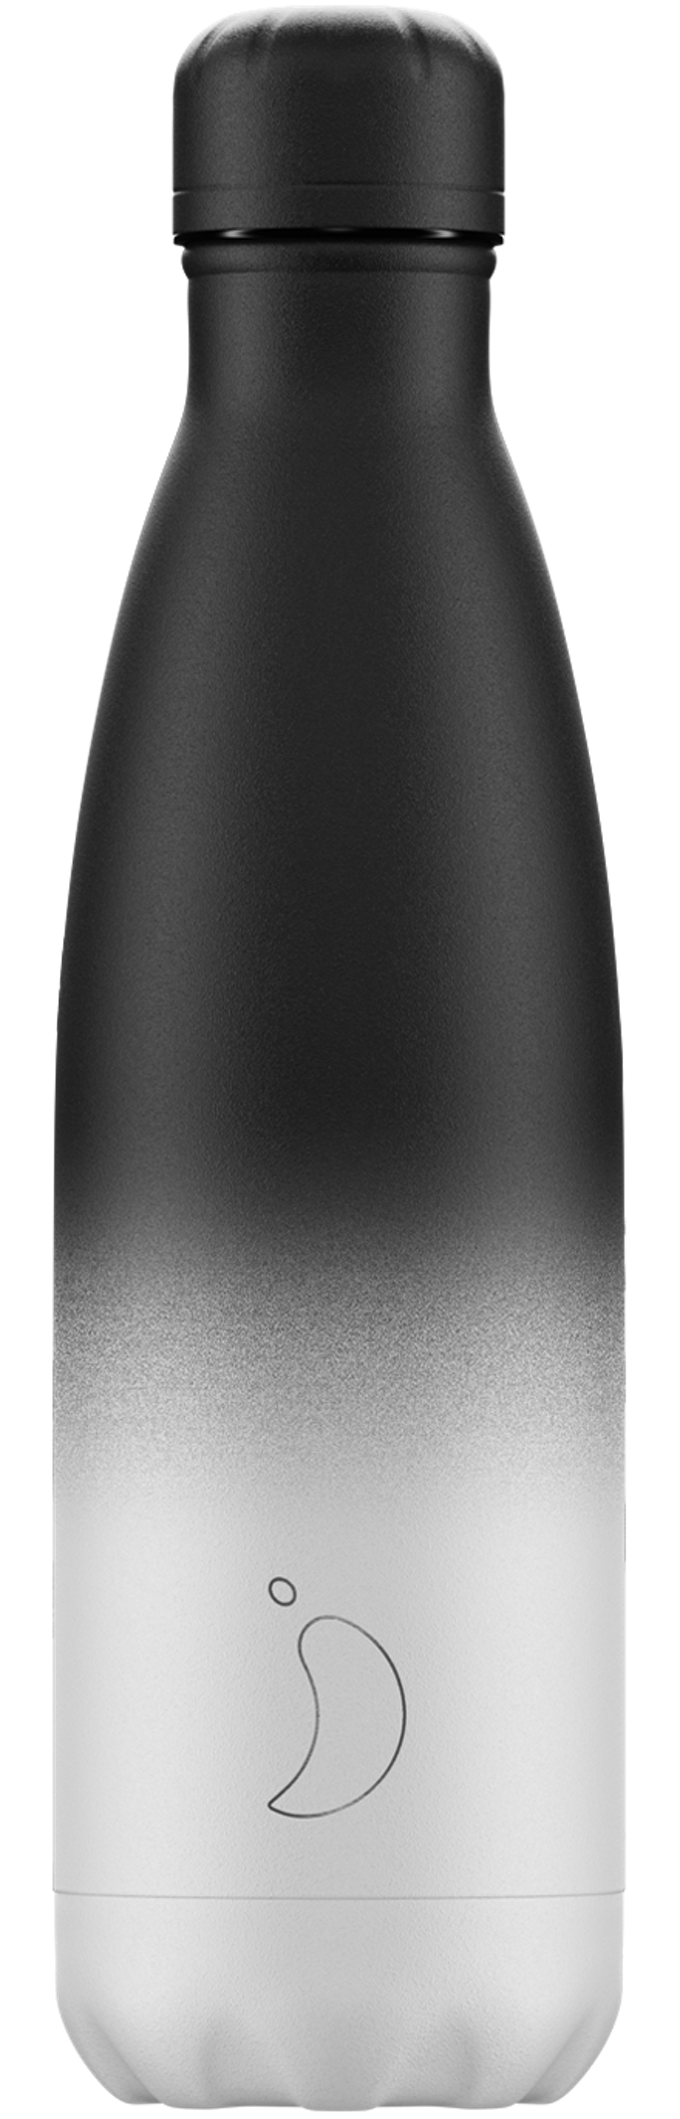 Gradient, black/white, 500 ml.